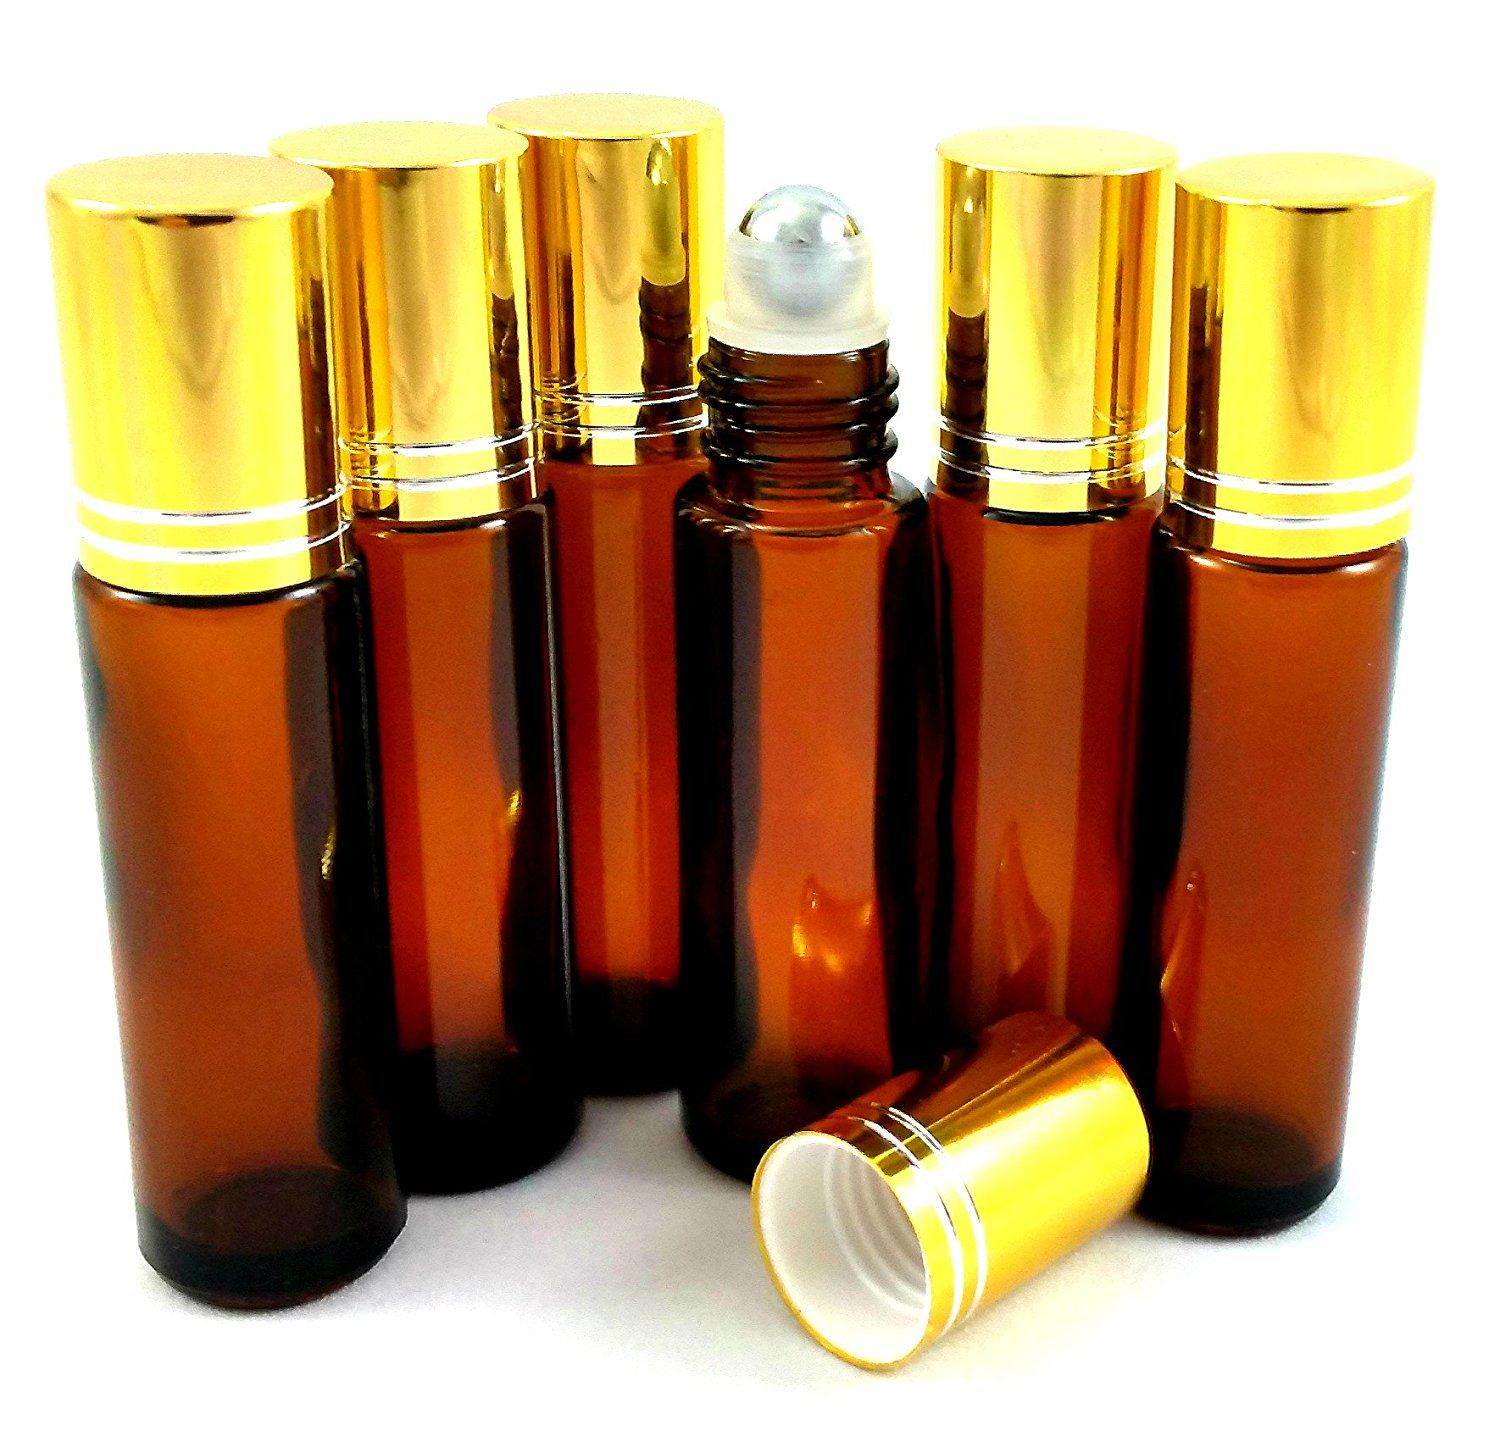 6 New Amber Glass 10ml Roller Bottles Recipe Ebook Included Apply Essential Oils Blends Roller Bottle Recipes Essential Oils Essential Oil Roller Balls